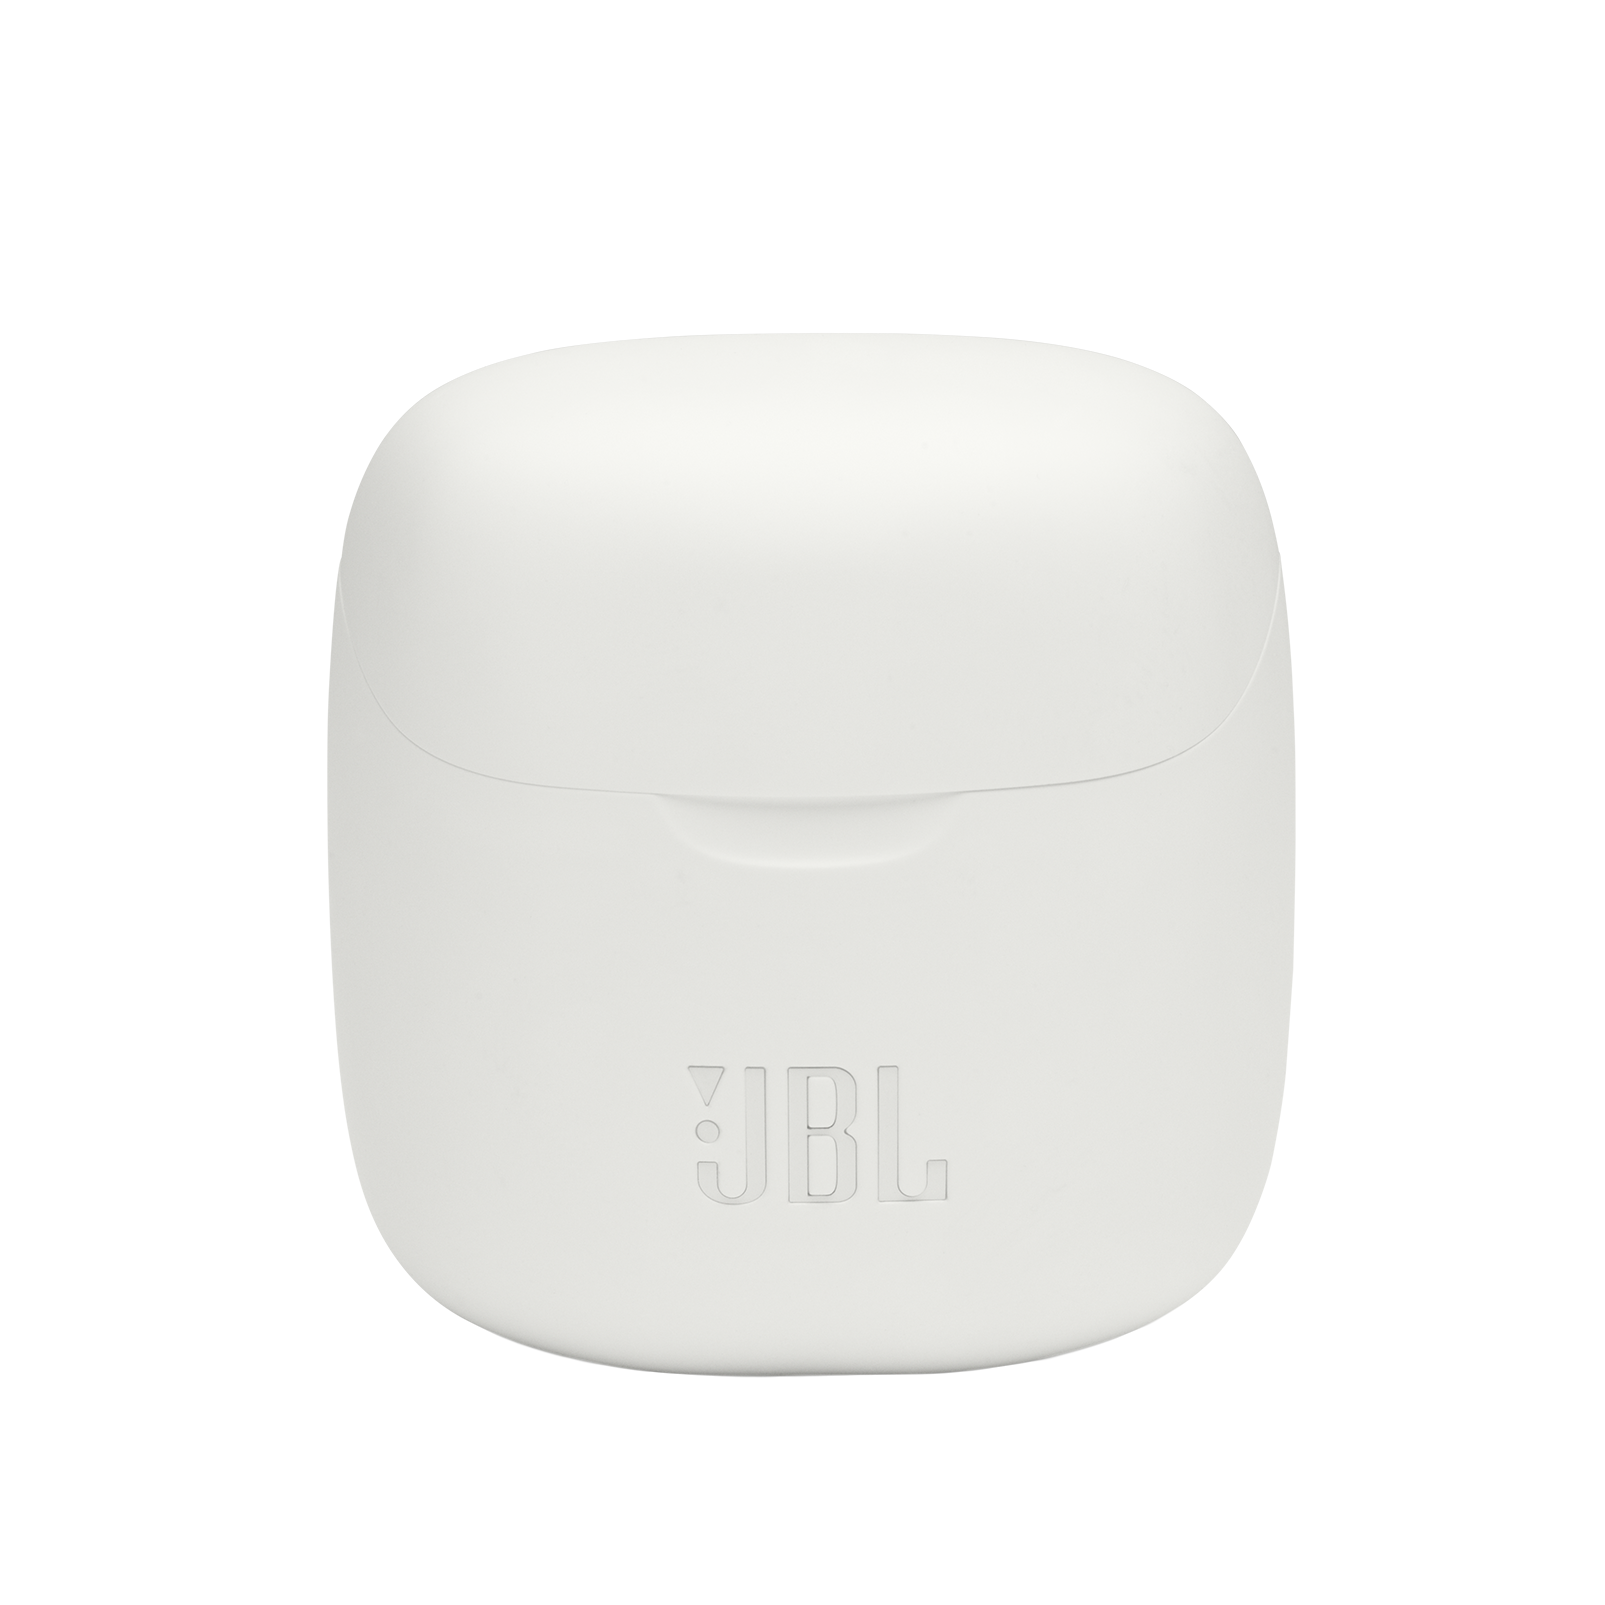 JBL TUNE 220TWS - White - True wireless earbuds - Detailshot 3